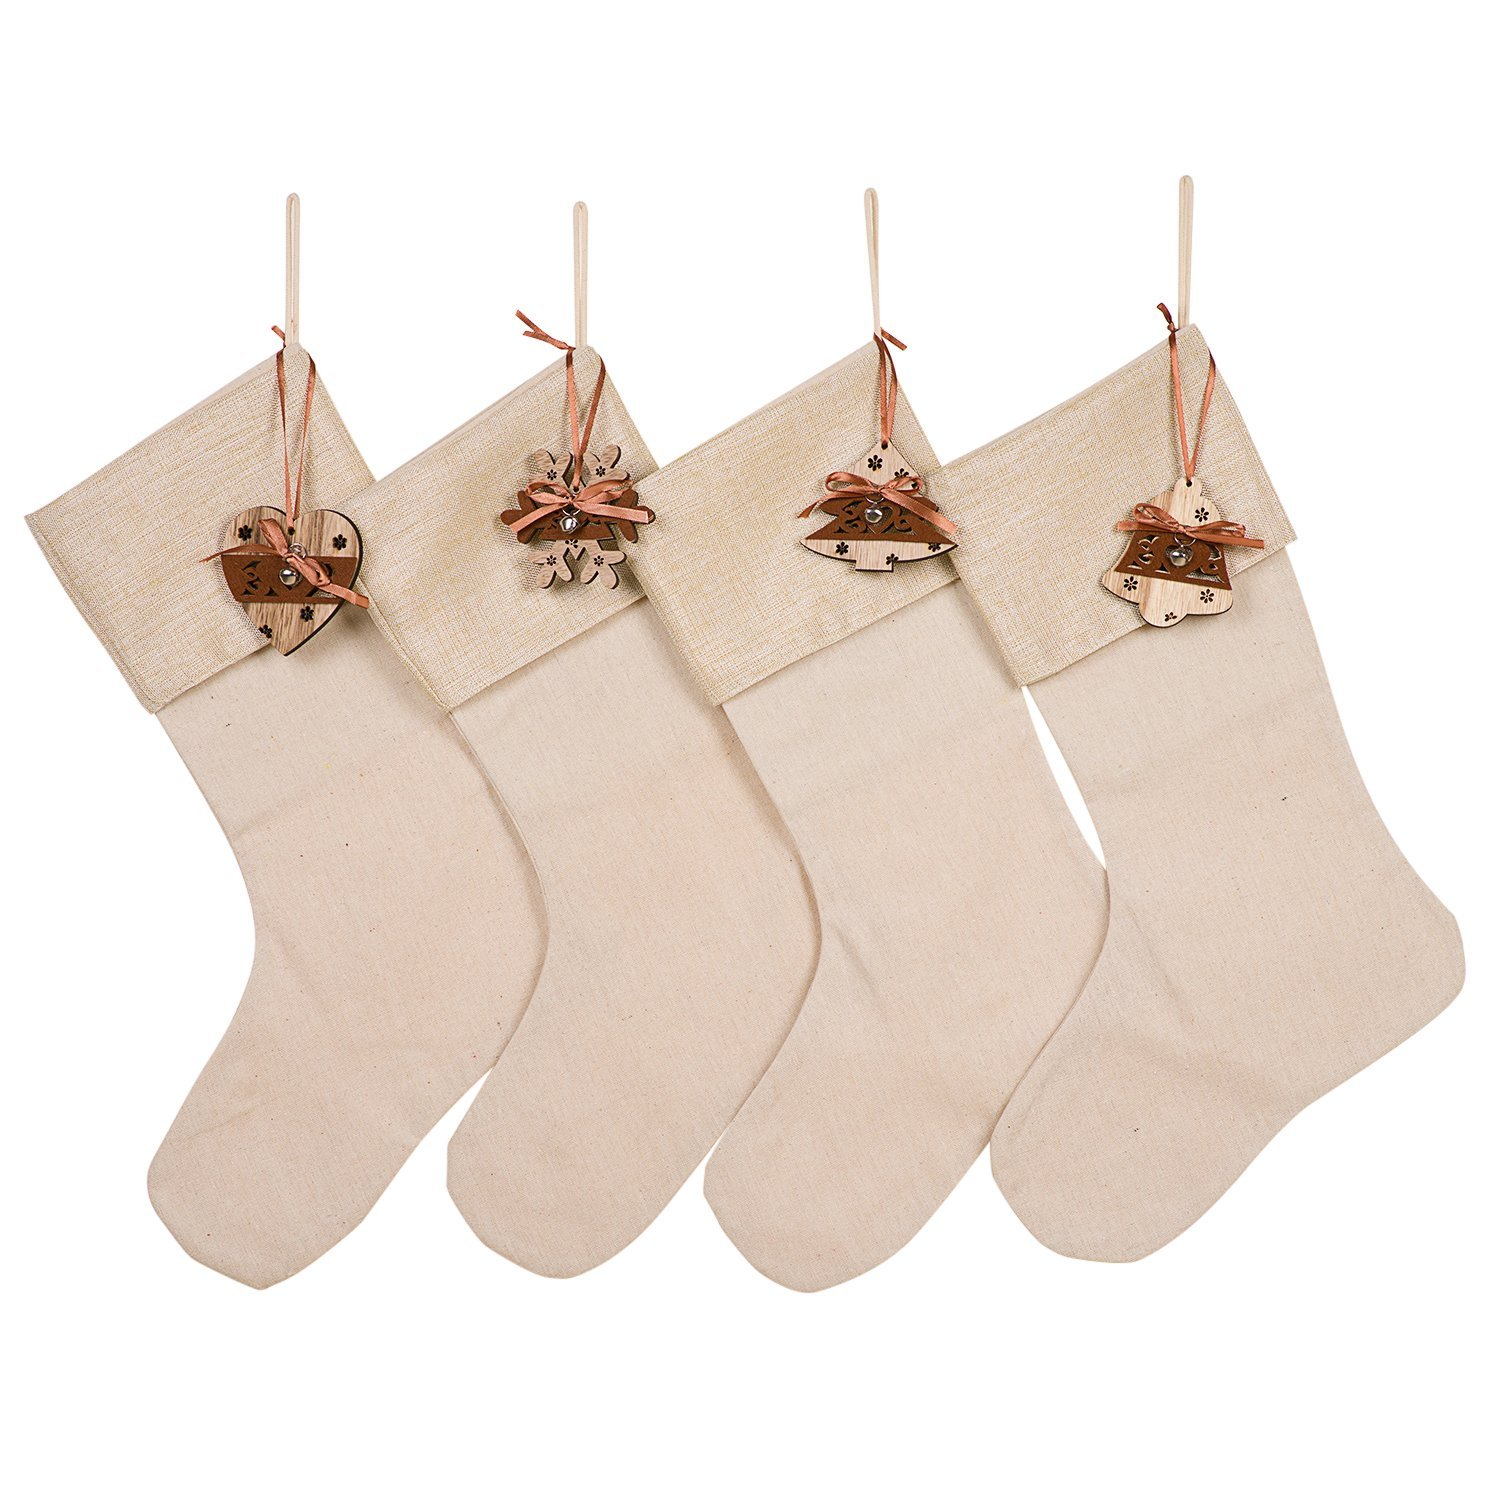 Huan Xun Wood Heart Tree Snoflower Bell Christmas Stockings, Set of 4, Available in Multiple Designs